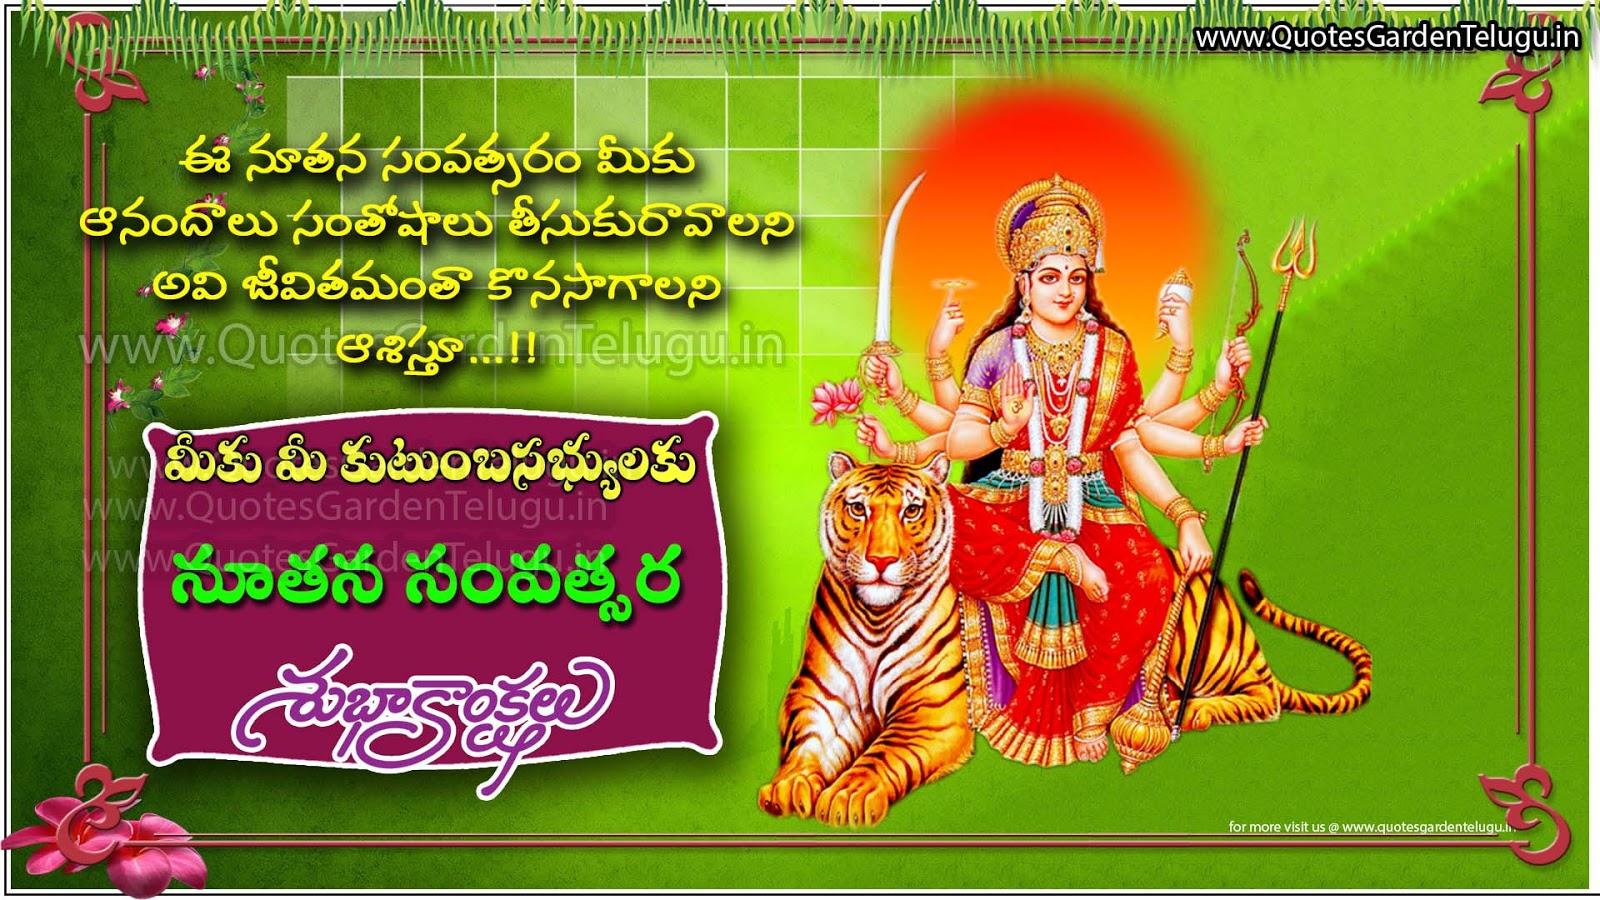 Happy New Year 2018 Telugu Greetings Wishes Quotes Messages Quotes